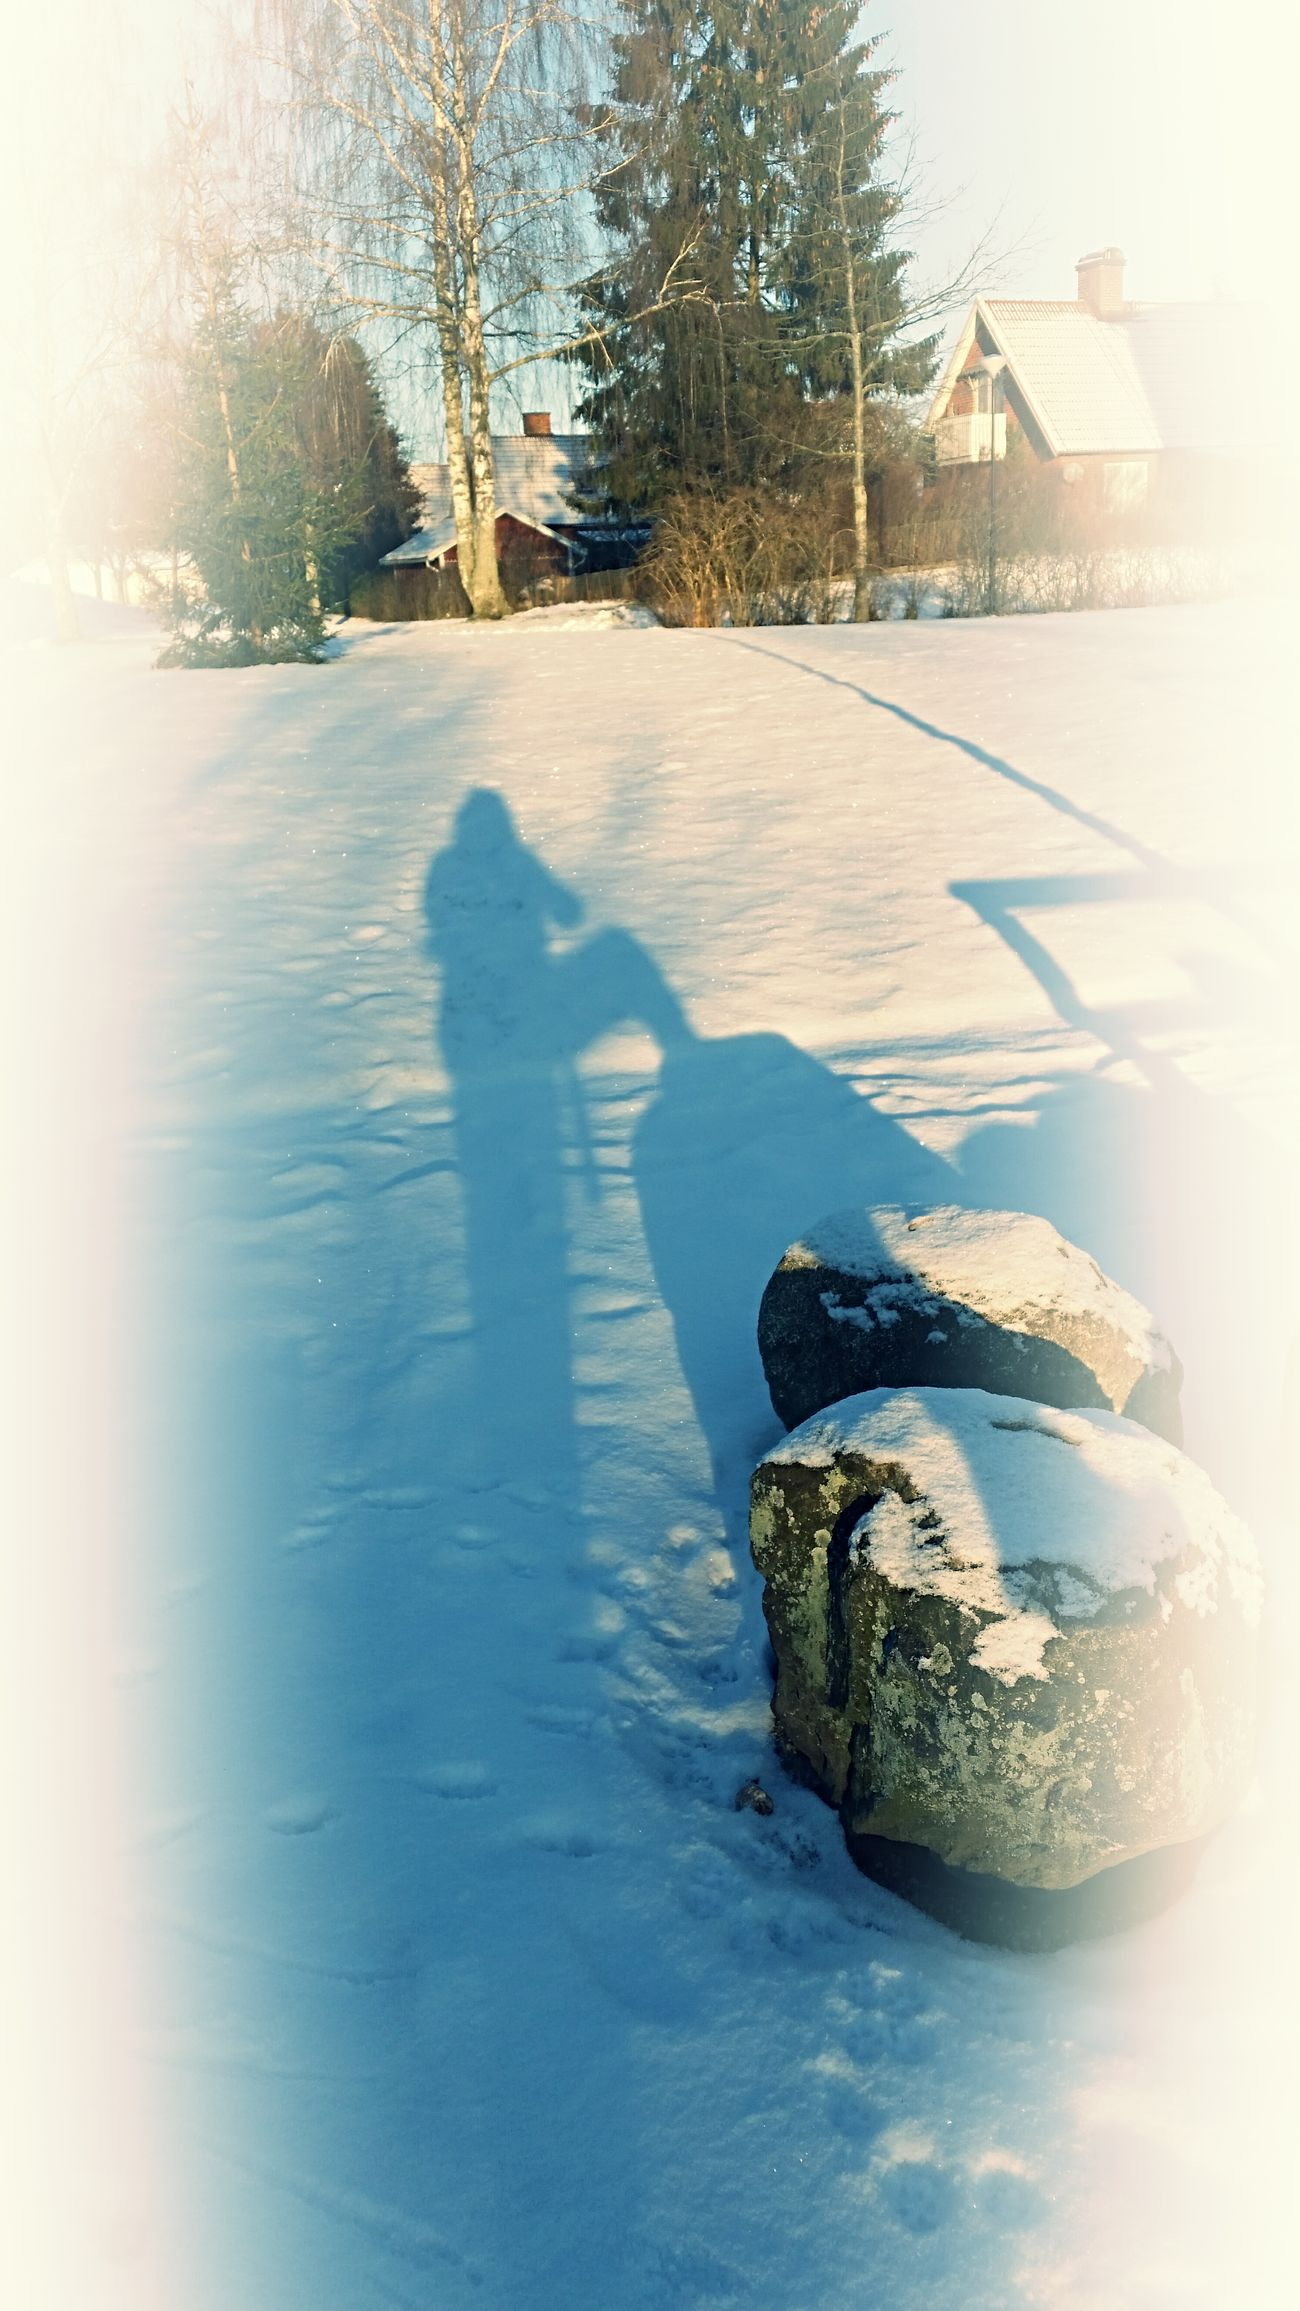 And the winter came.... Great Year Coming Almost Ready Good Times Ahead On My Way Winter Cold Days Shadowplay Me And My Shadow Have A Nice Day♥